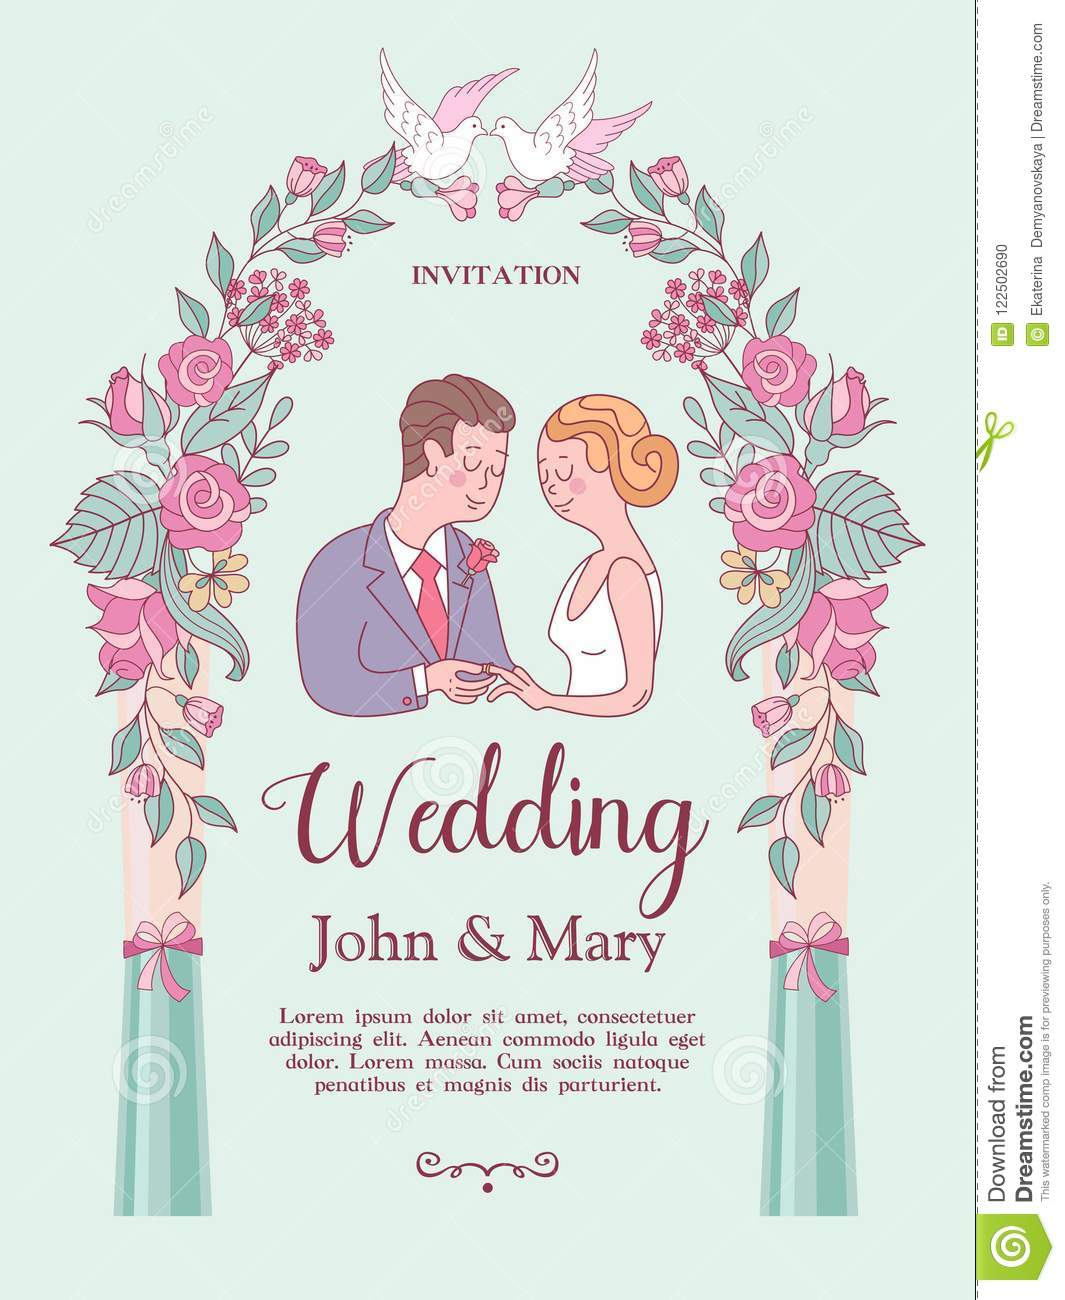 Wedding Invitation. Lovely Wedding Card With The Bride And Groom ...